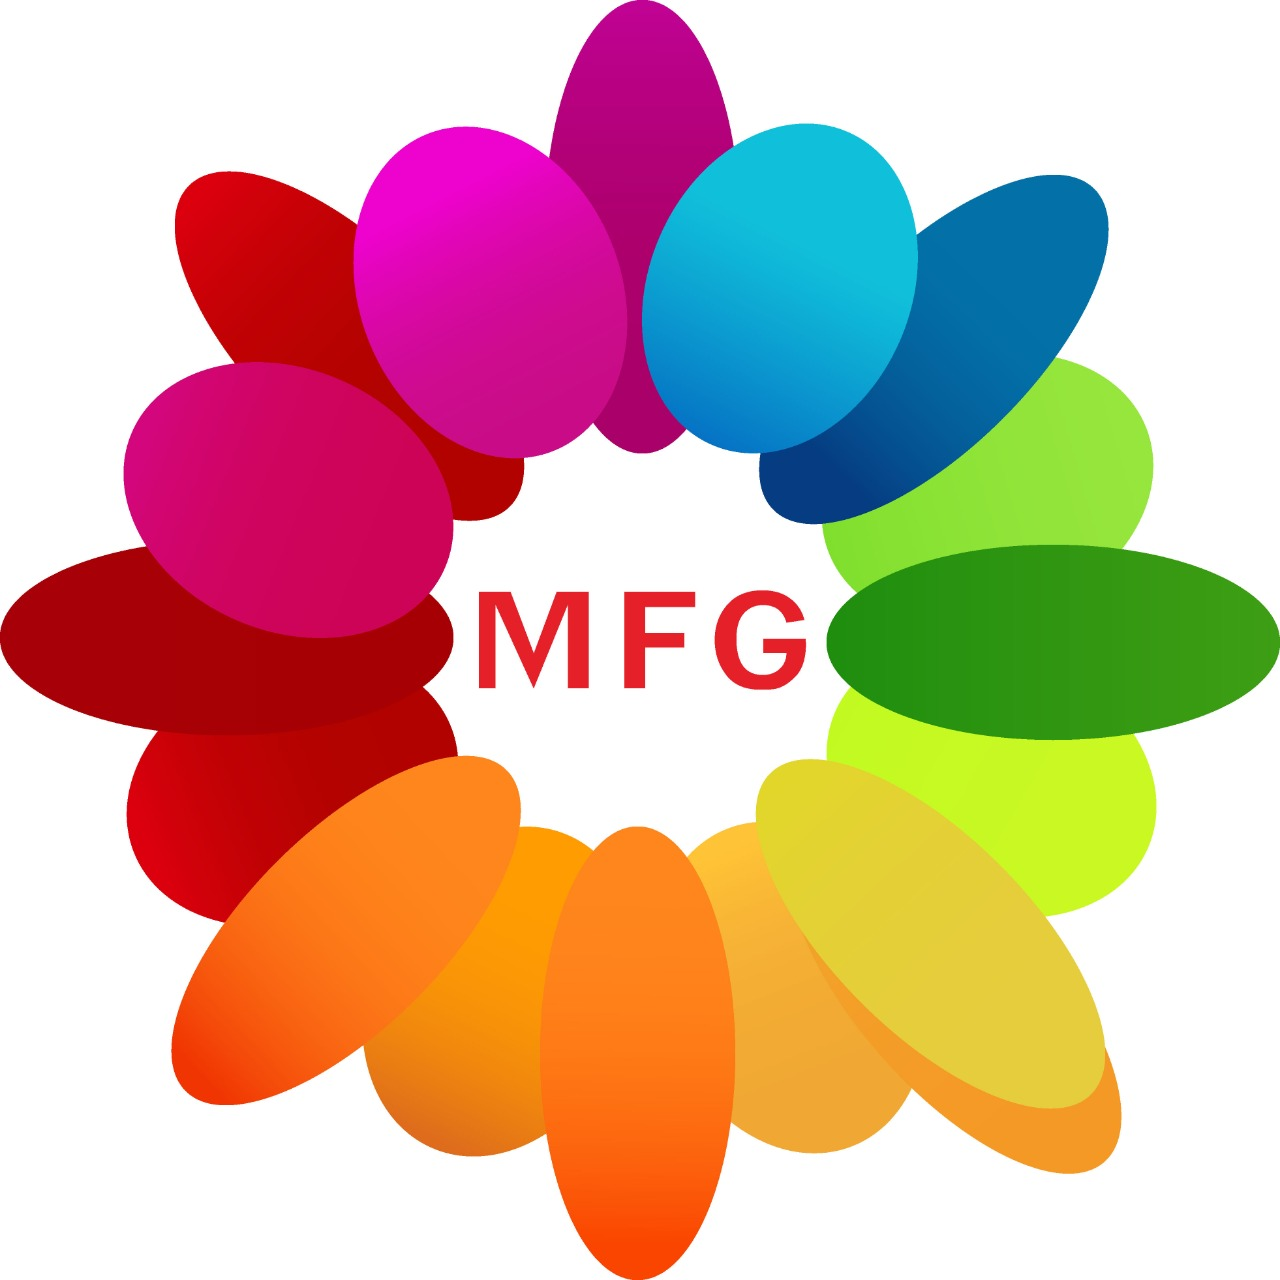 50 red rose heart shape arrangement